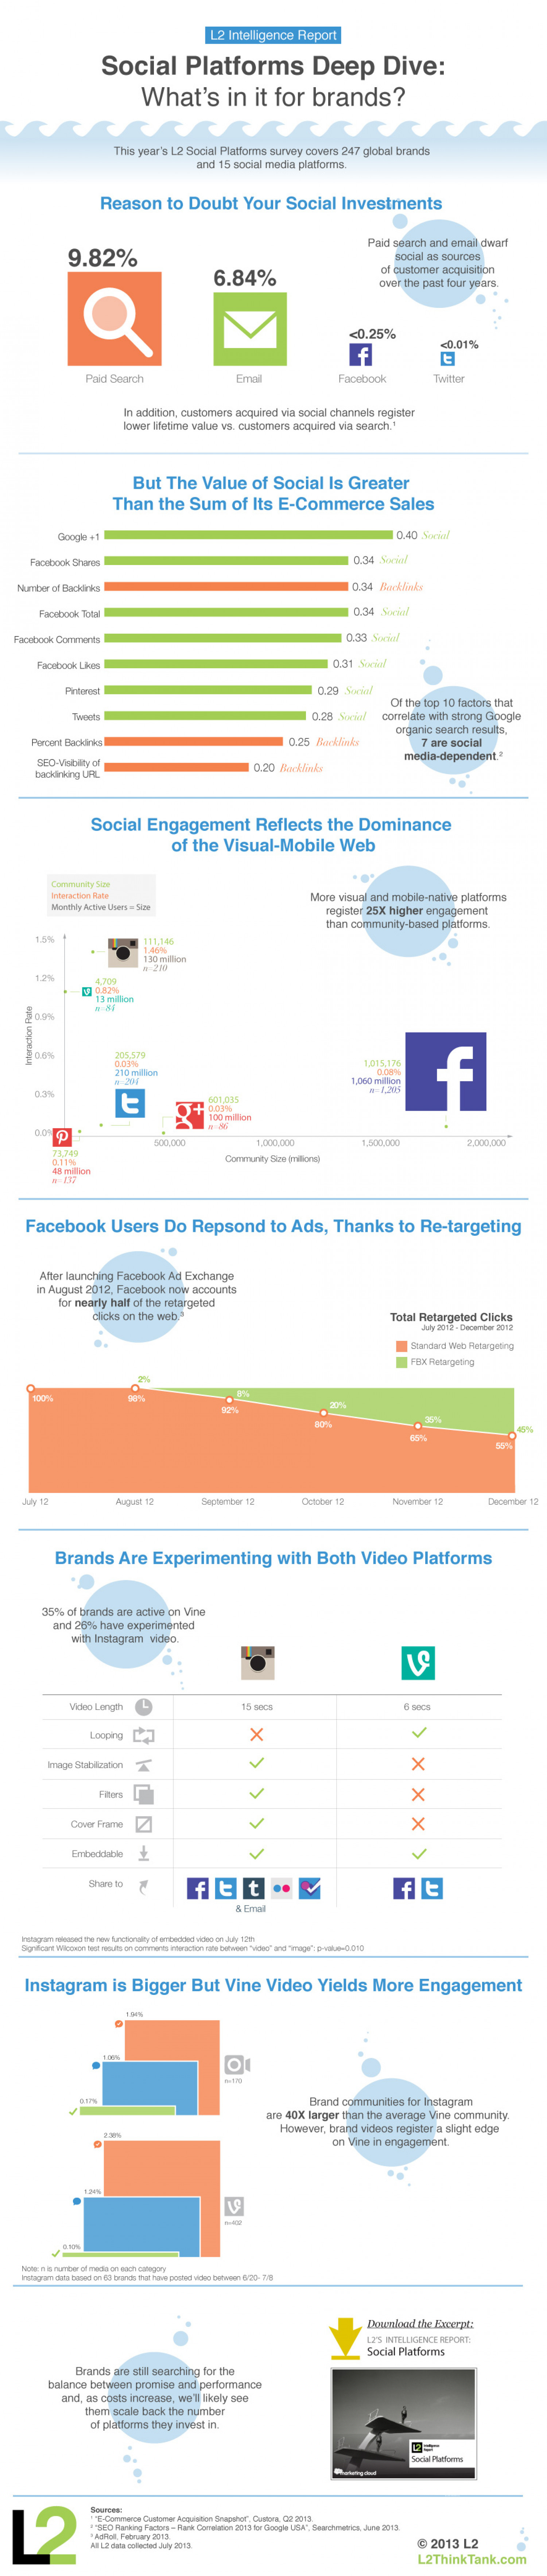 Social Platforms Deep Dive Infographic